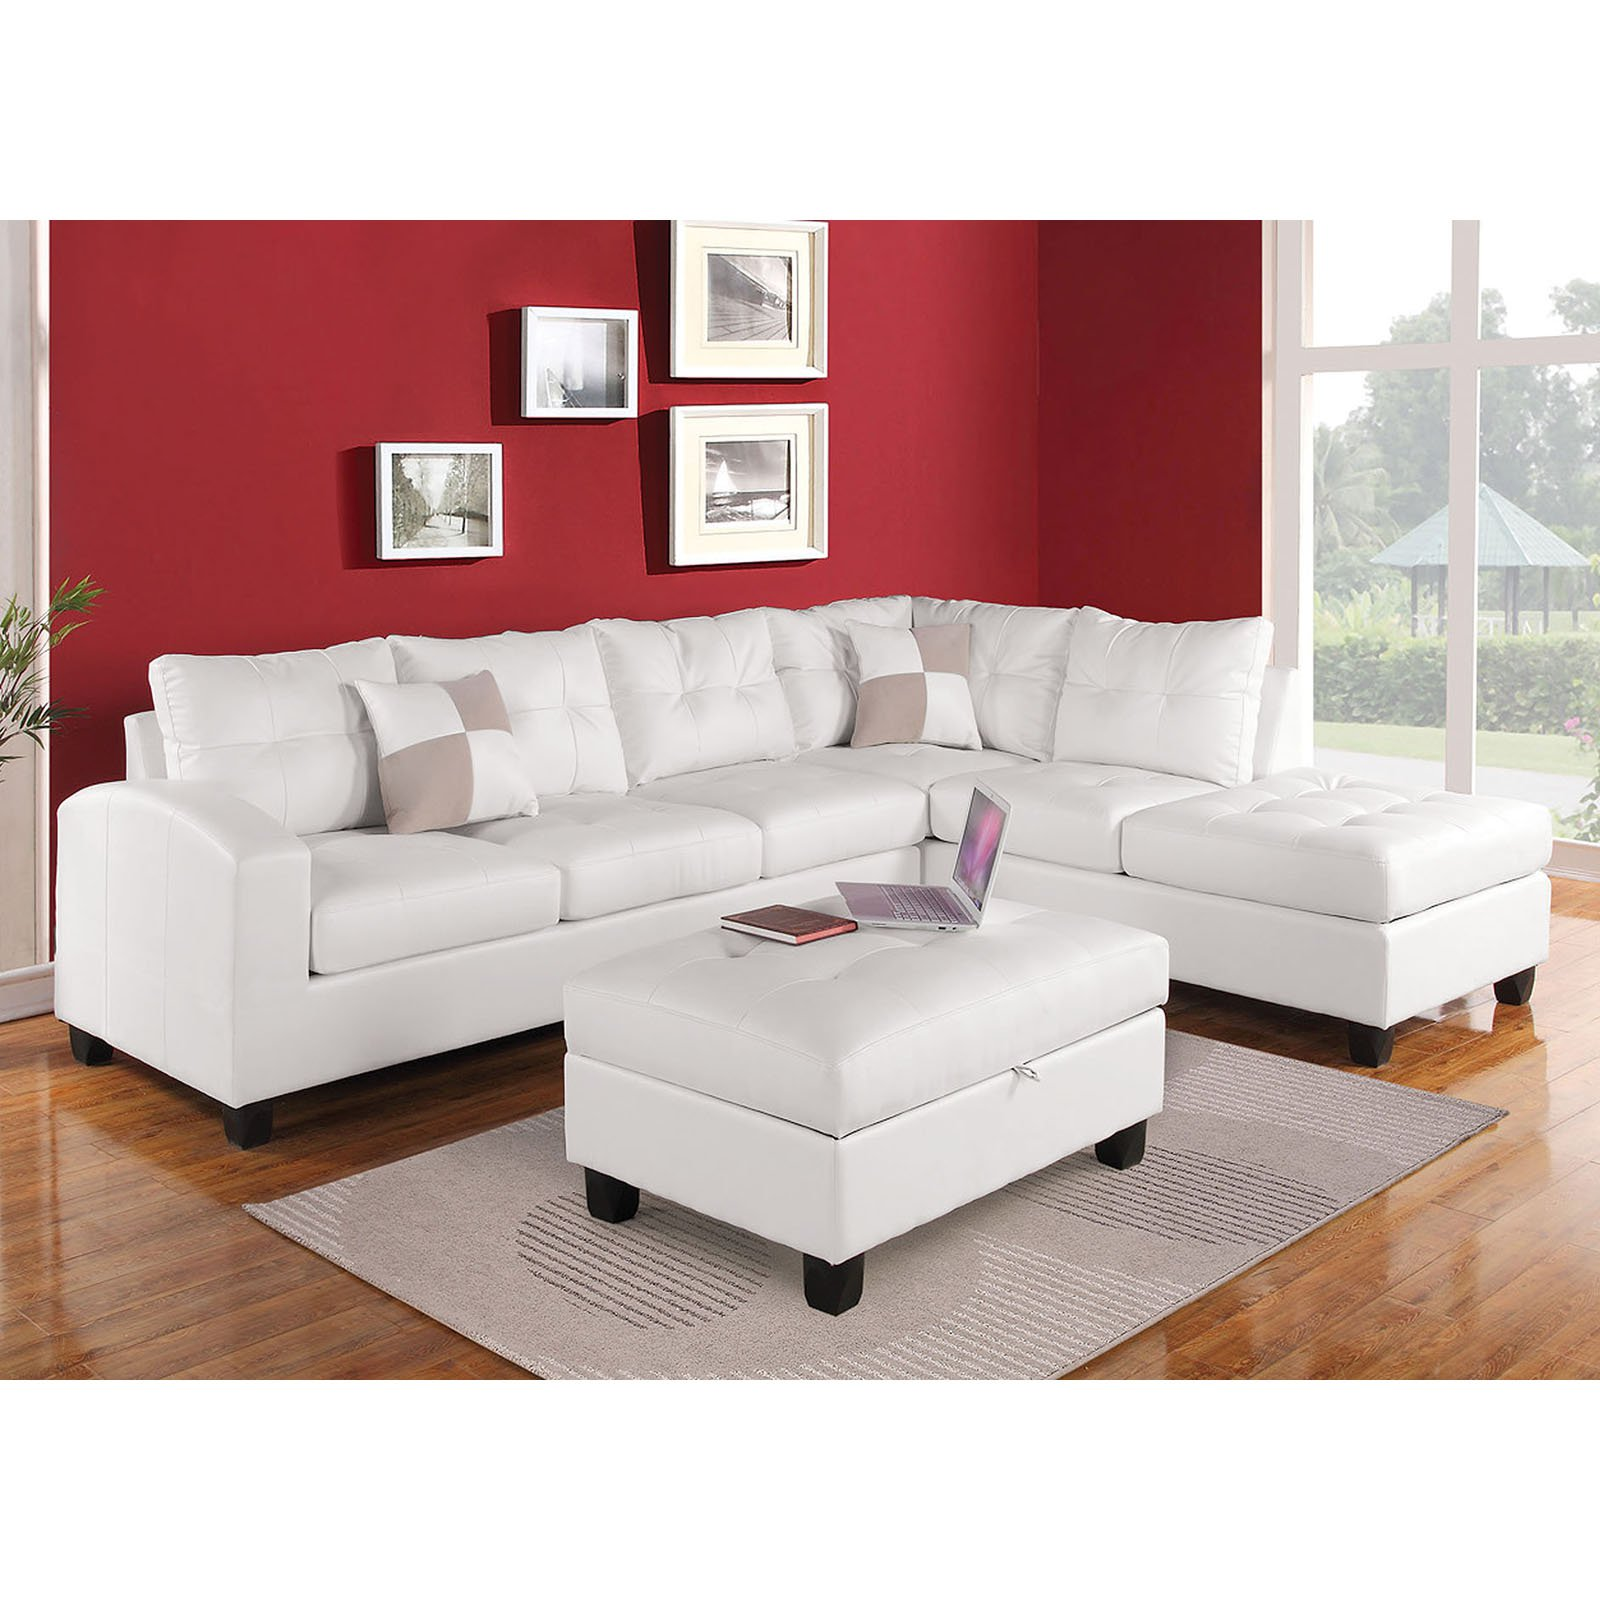 Miraculous Acme Furniture Kiva Sectional Sofa With Reversible Pillows Dailytribune Chair Design For Home Dailytribuneorg